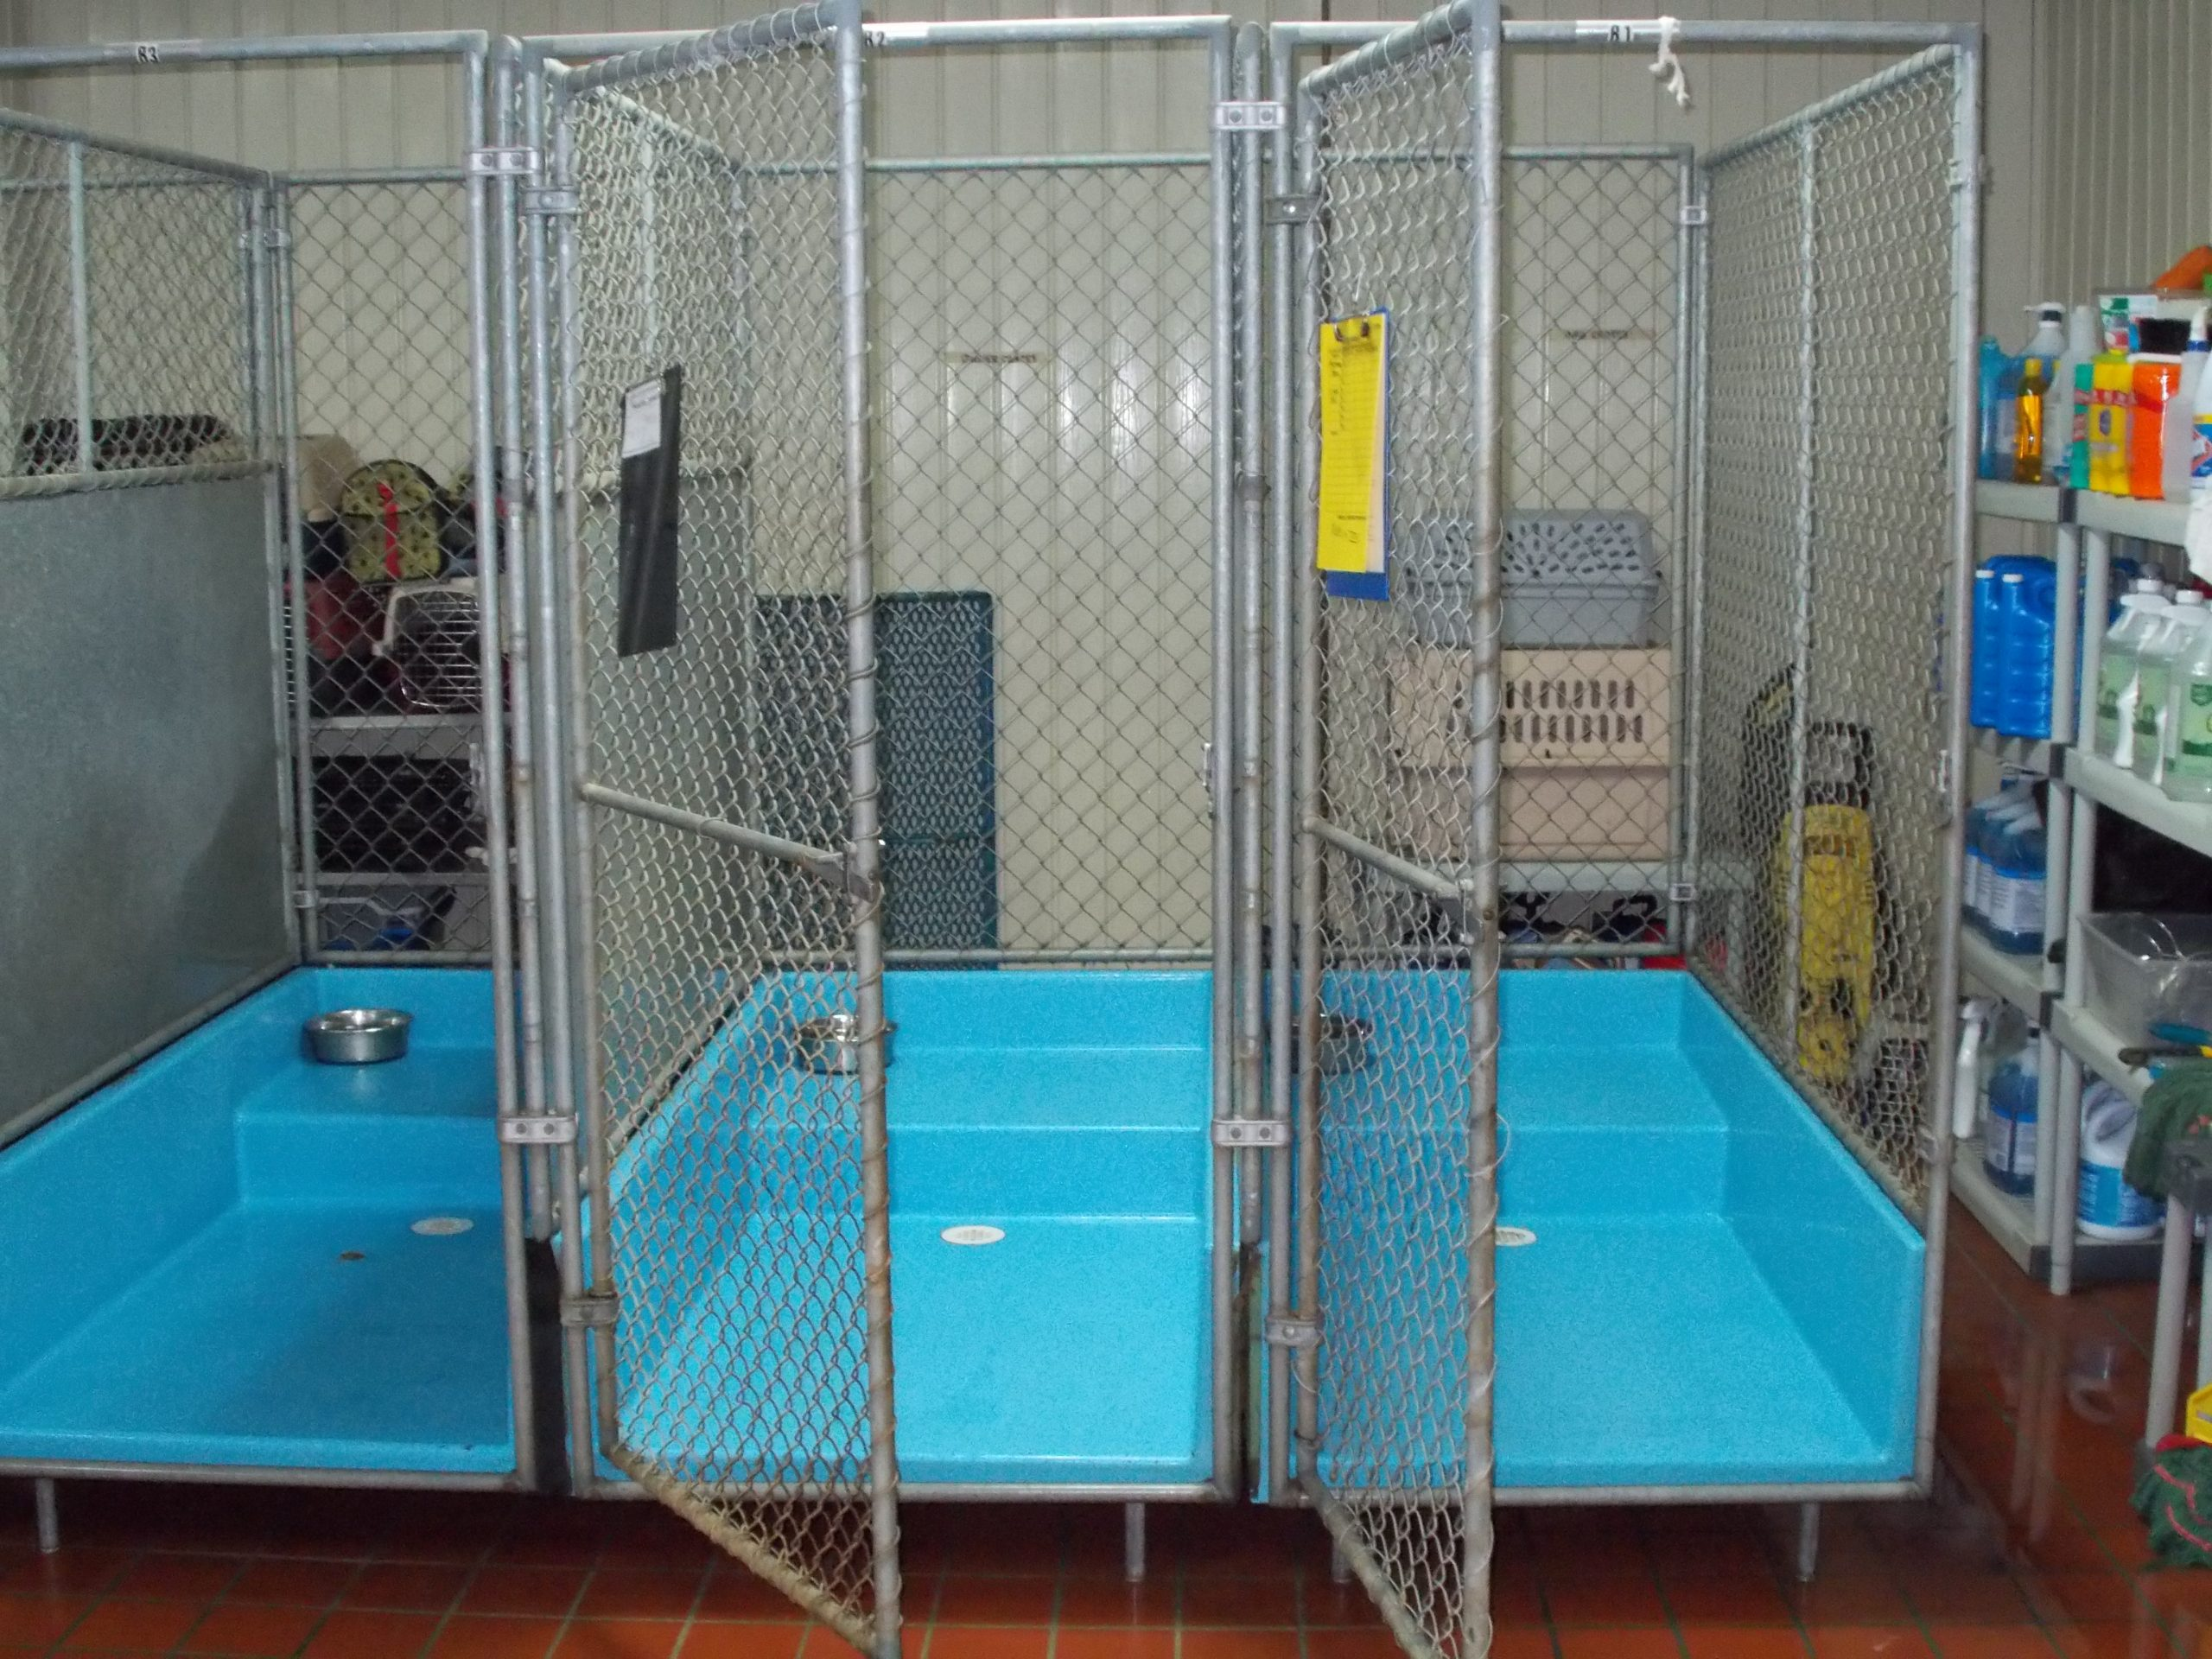 Three of the dogs kennels